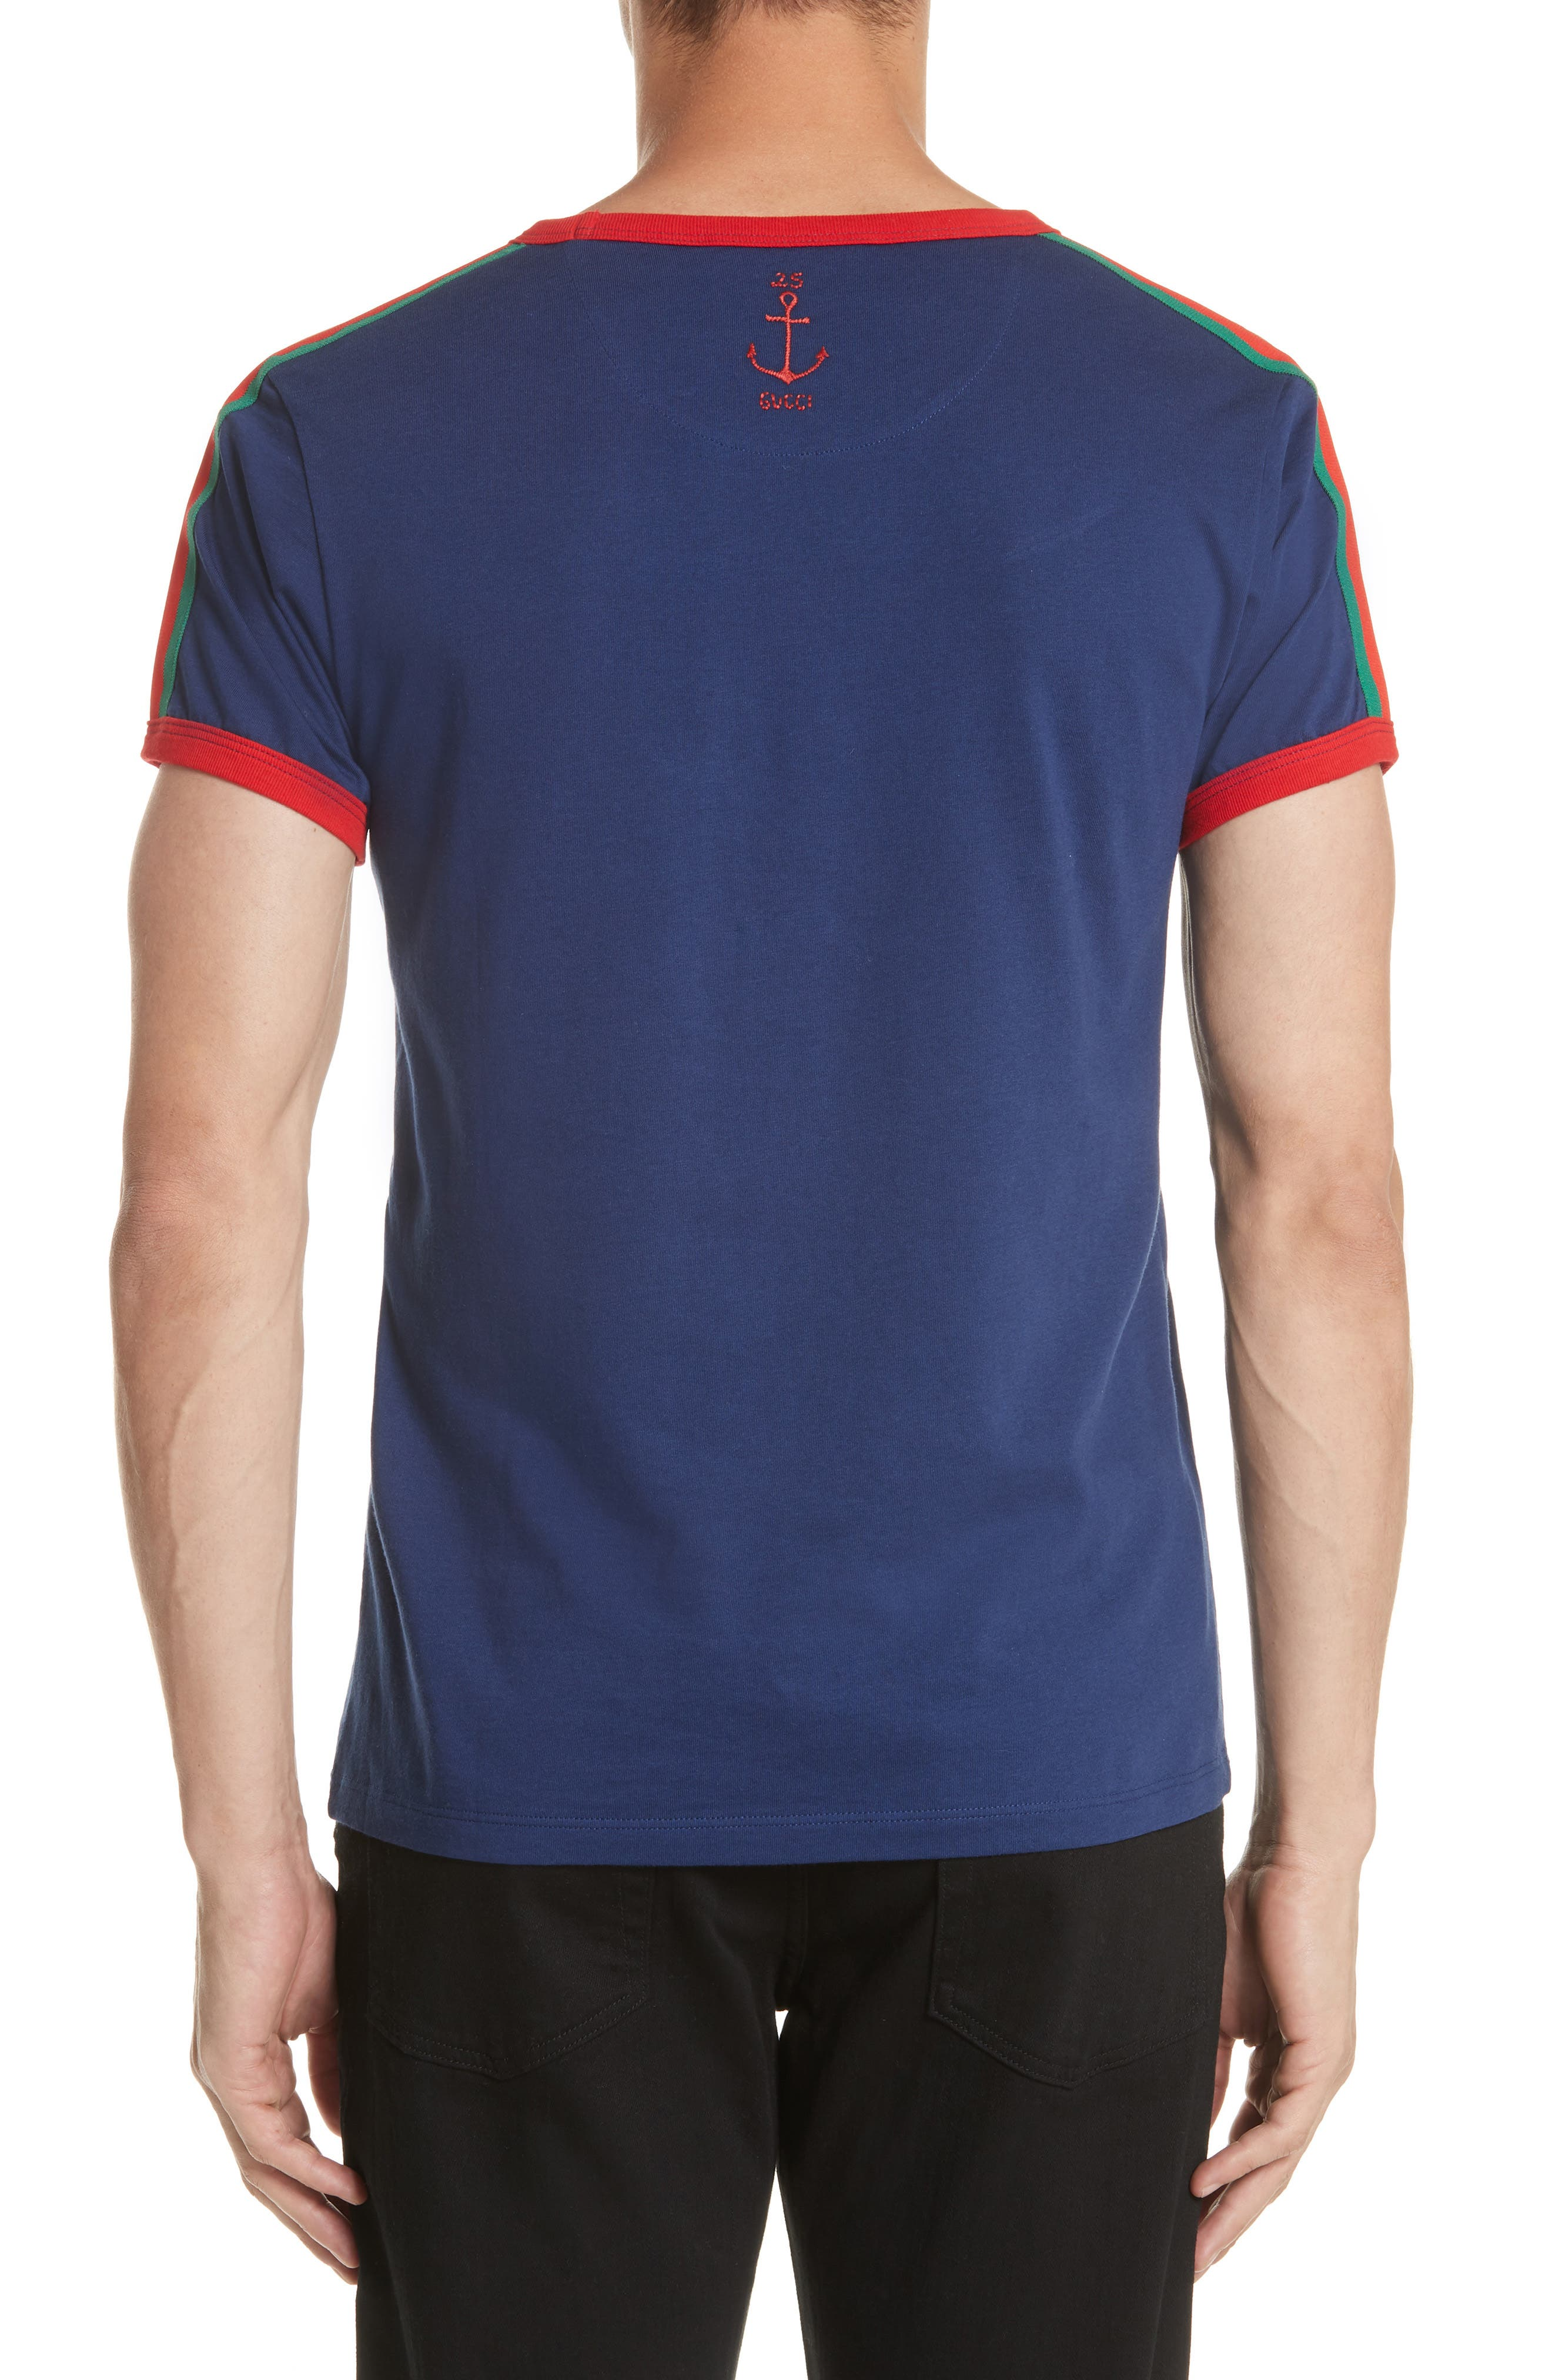 Guccification T-Shirt,                             Alternate thumbnail 2, color,                             4455 Navy